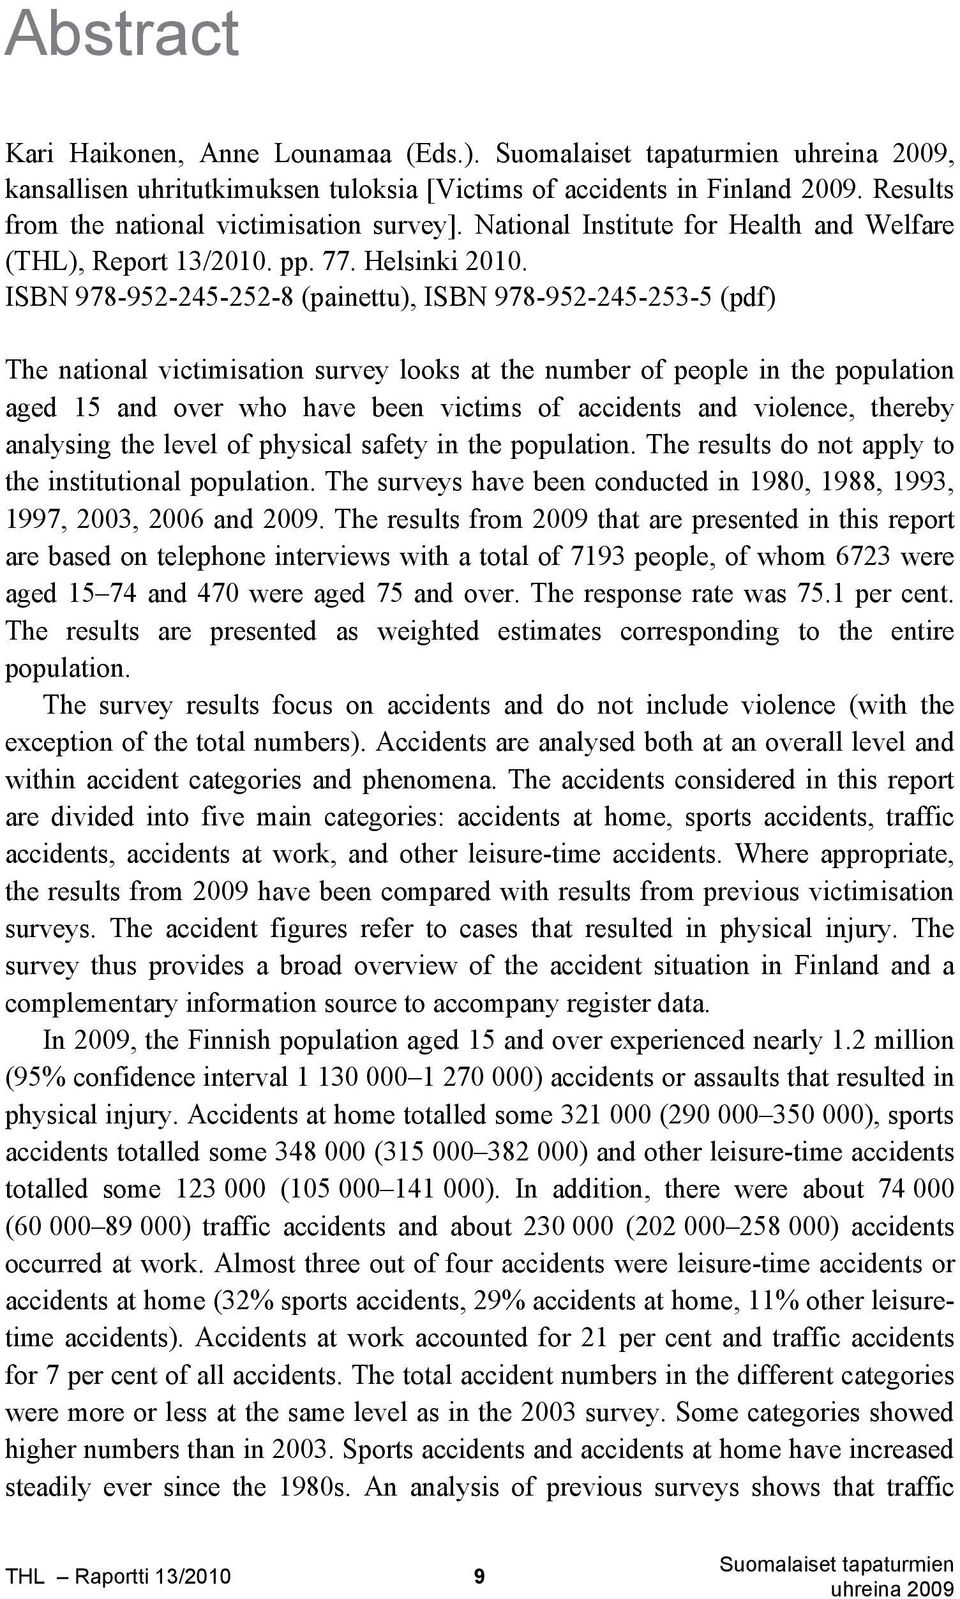 ISBN 978-952-245-252-8 (painettu), ISBN 978-952-245-253-5 (pdf) The national victimisation survey looks at the number of people in the population aged 15 and over who have been victims of accidents